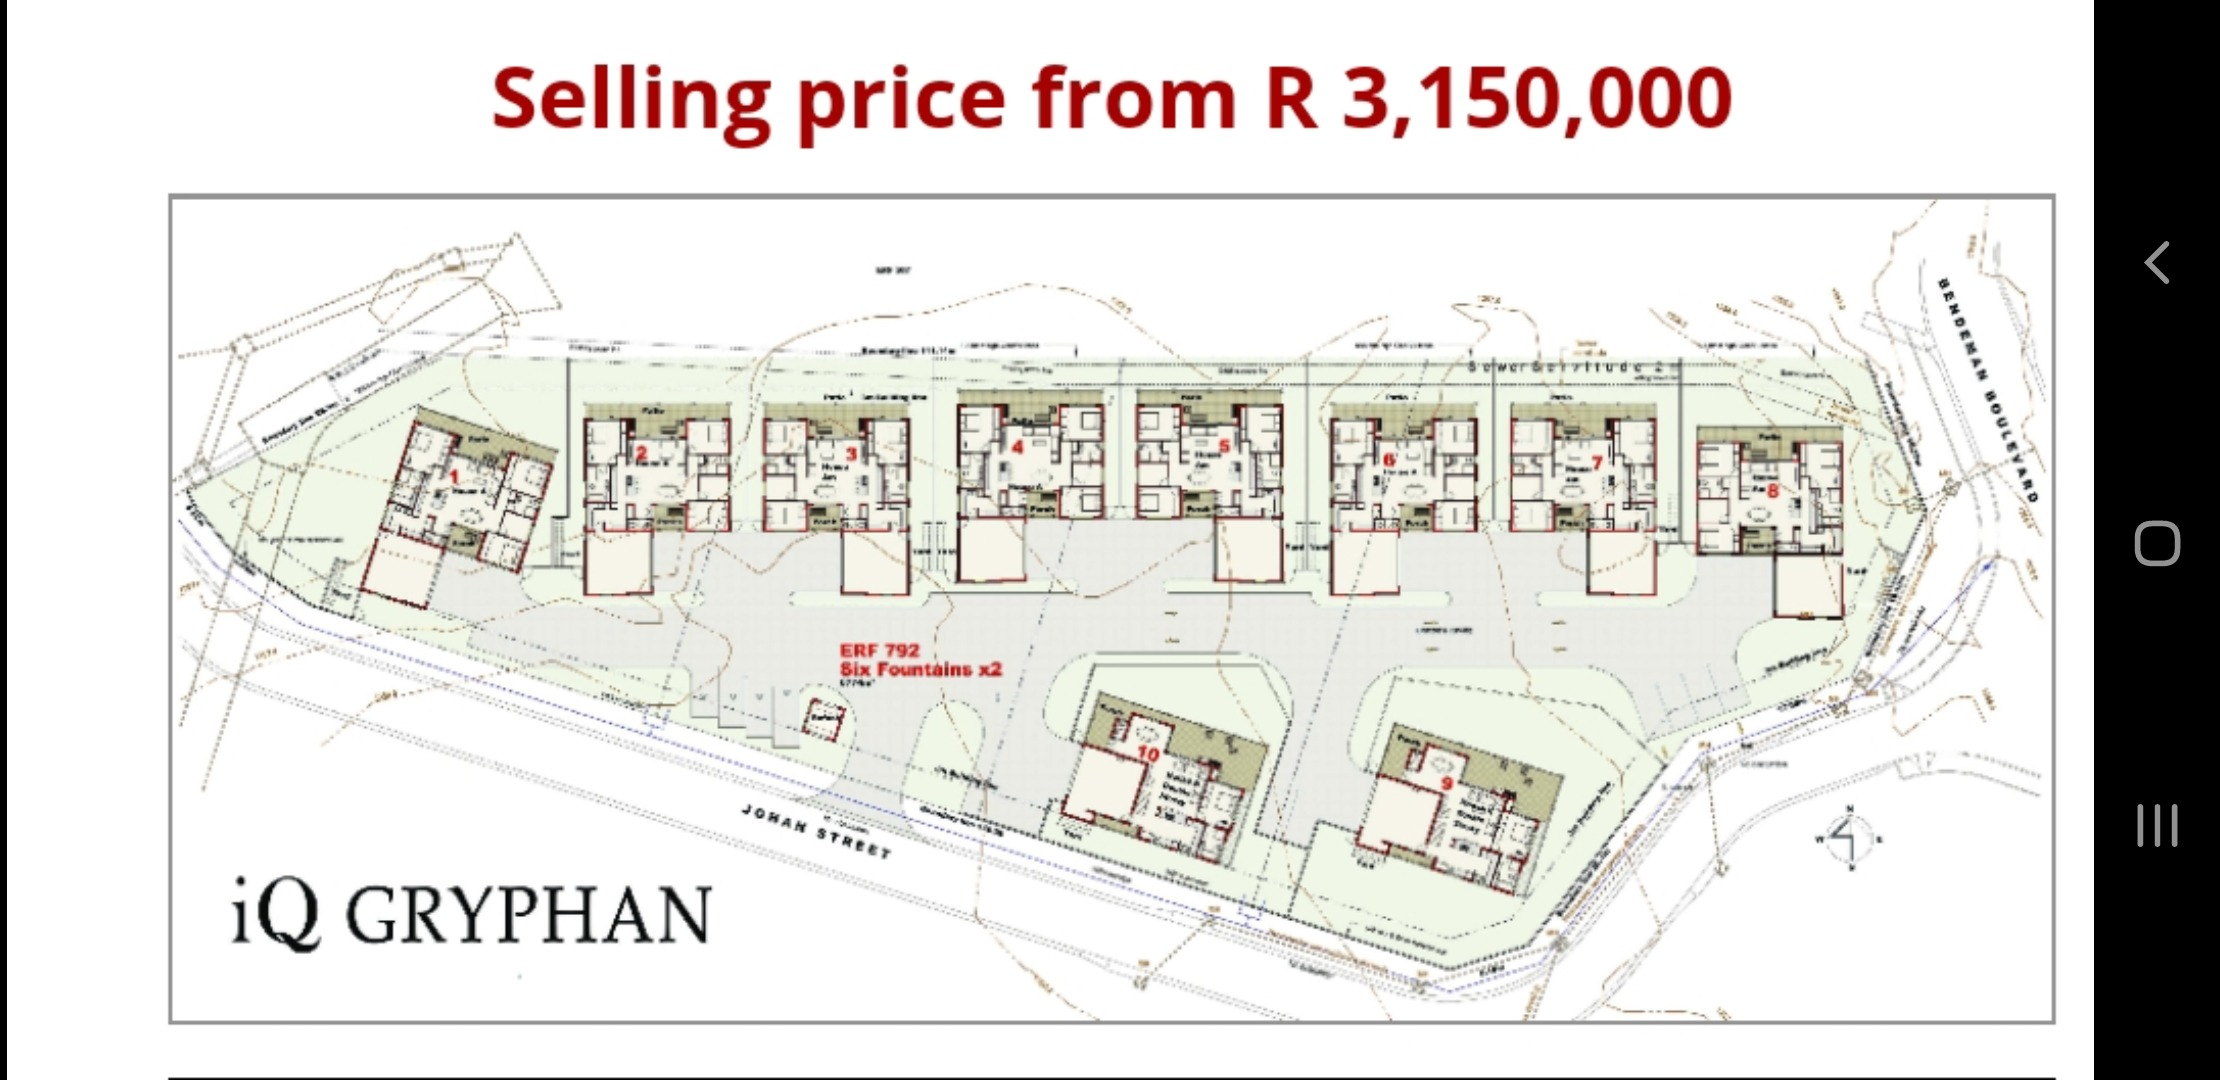 3 Bedroom Townhouse For Sale in Six Fountains Residential Estate